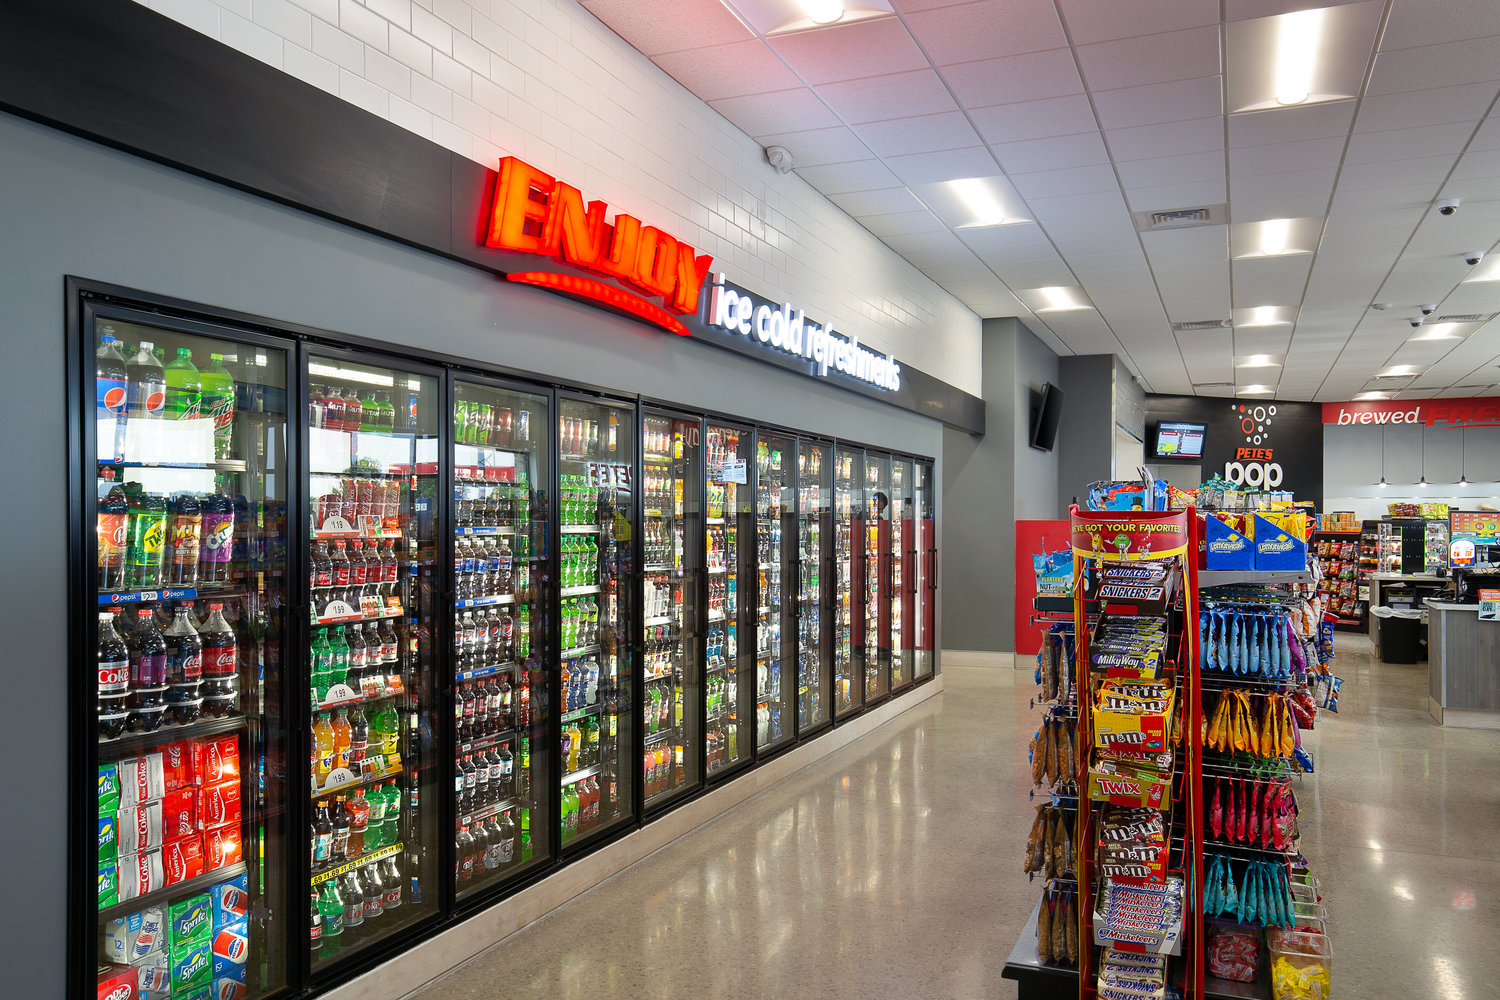 04_ThompsonPhotography_20180607_Pete's+Convenience+Store (1).jpg